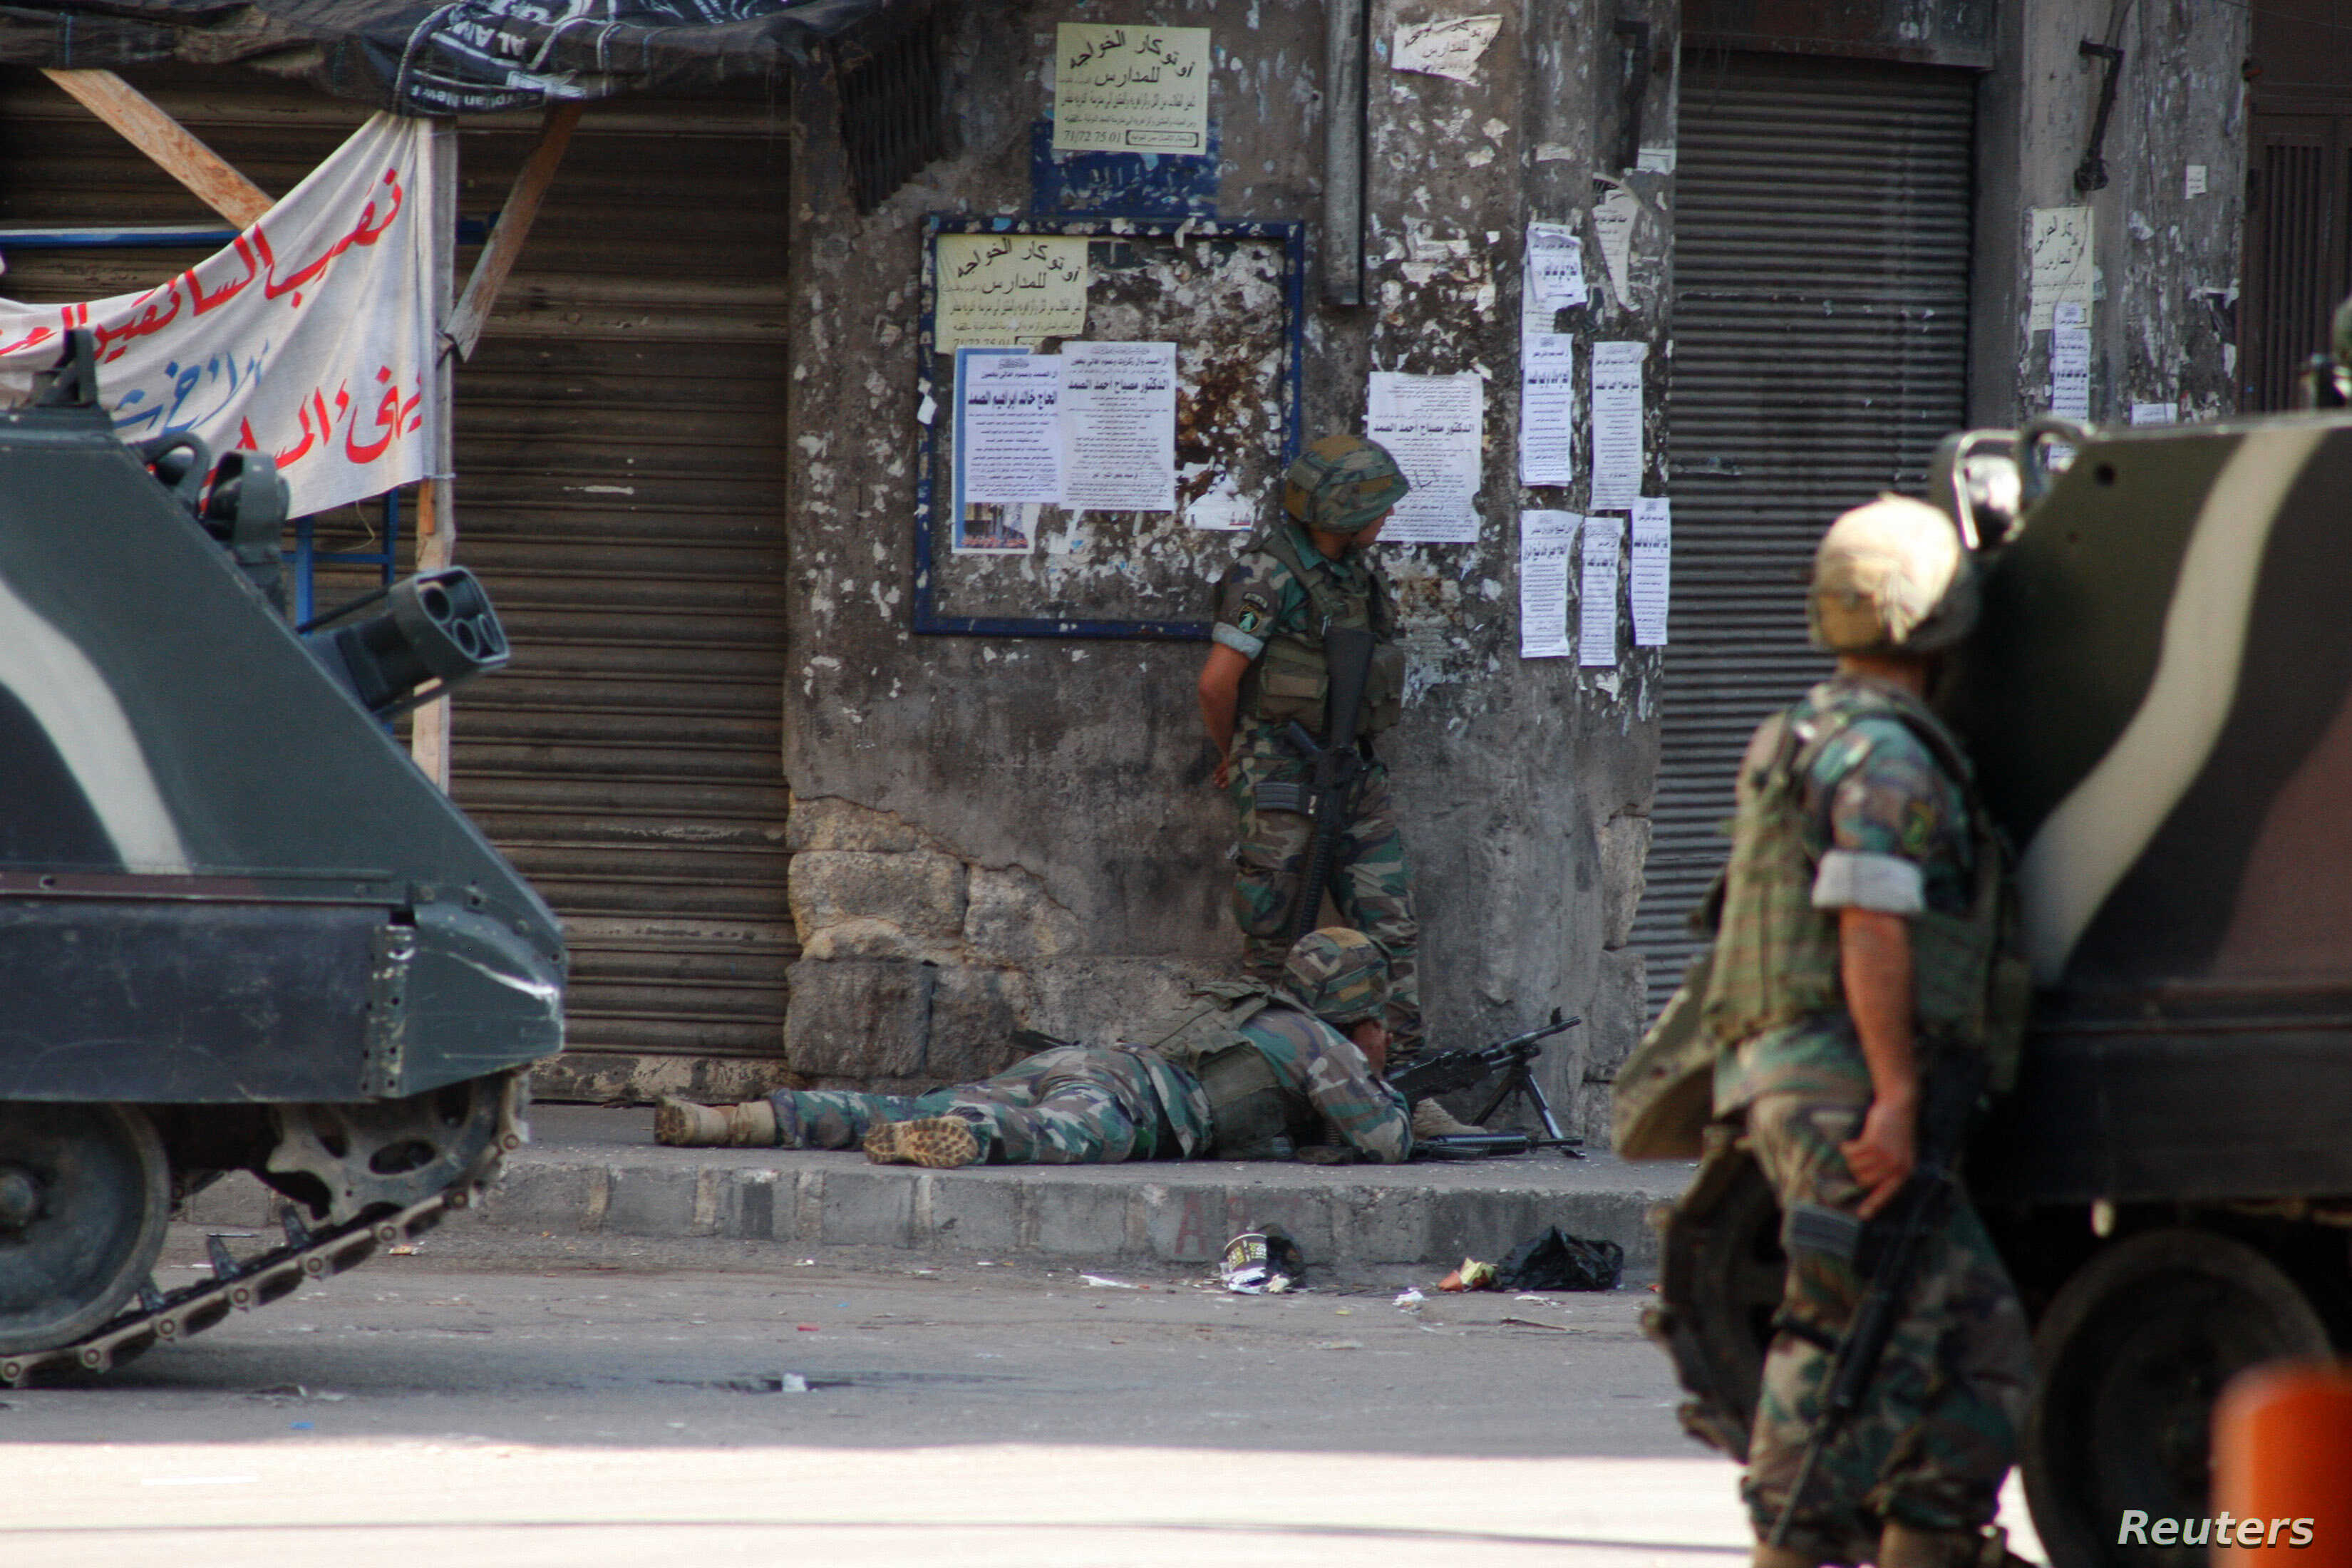 Lebanese army soldiers take shooting positions during clashes with Islamist militants in Tripoli, Oct. 26, 2014.